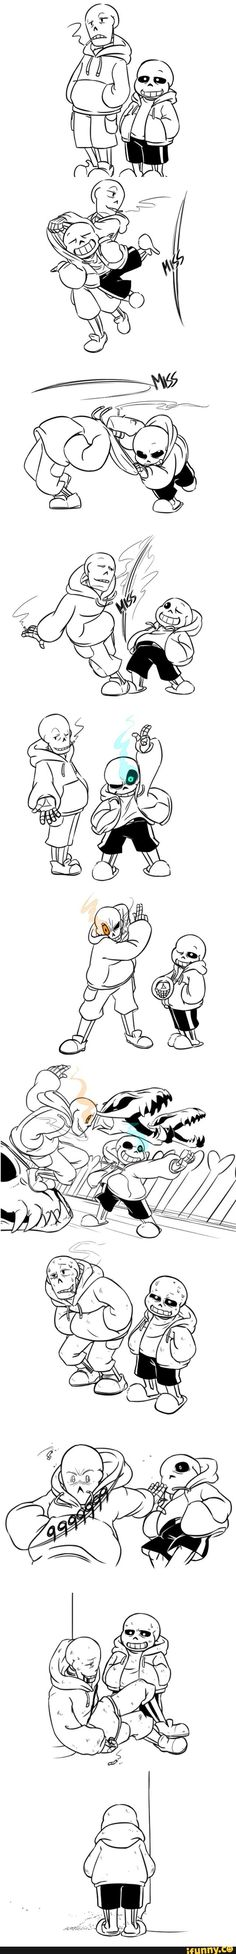 Undertale Sans and Underswap!Paps final fighting. OHKAY, NOPE THAT ENDING. NOPETY NOPETY NOPE.